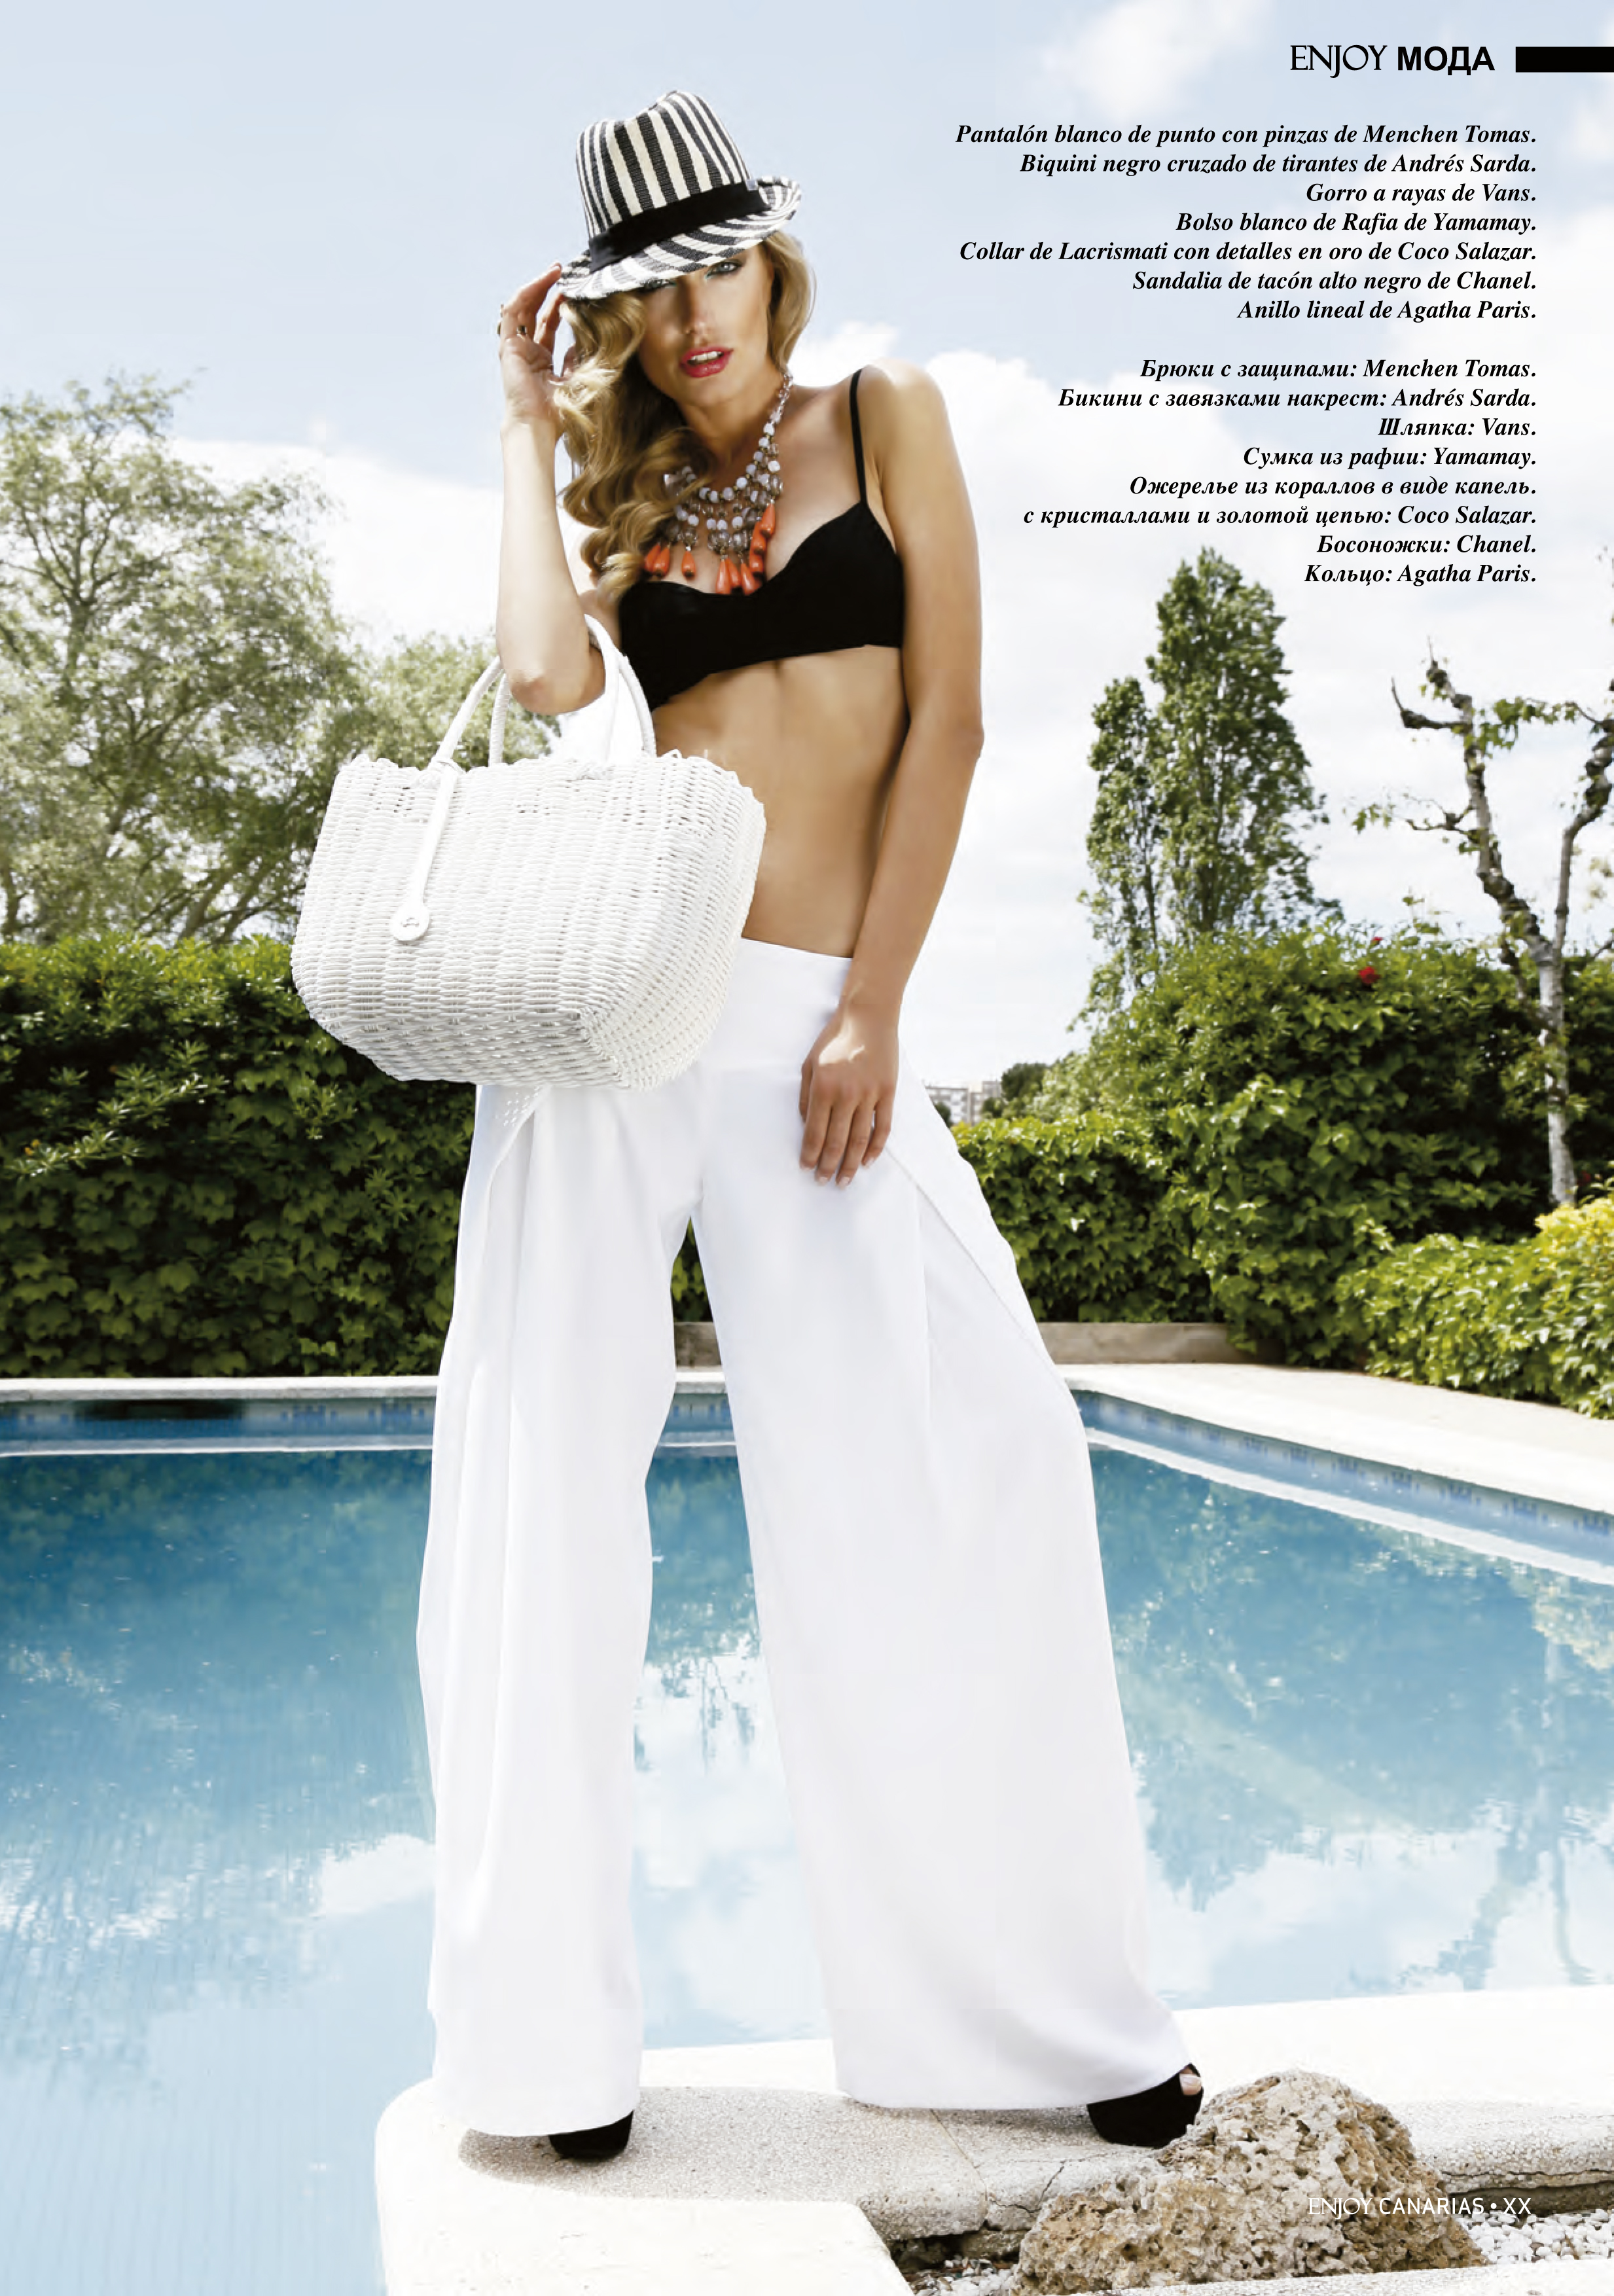 """""""White trousers by Menchen Tomas, bikini by Andrés Sarda, hat by Vans, bag by Yamamay, necklace by Coco Salazar, shoes by Chanel, ring by Agatha Paris."""""""